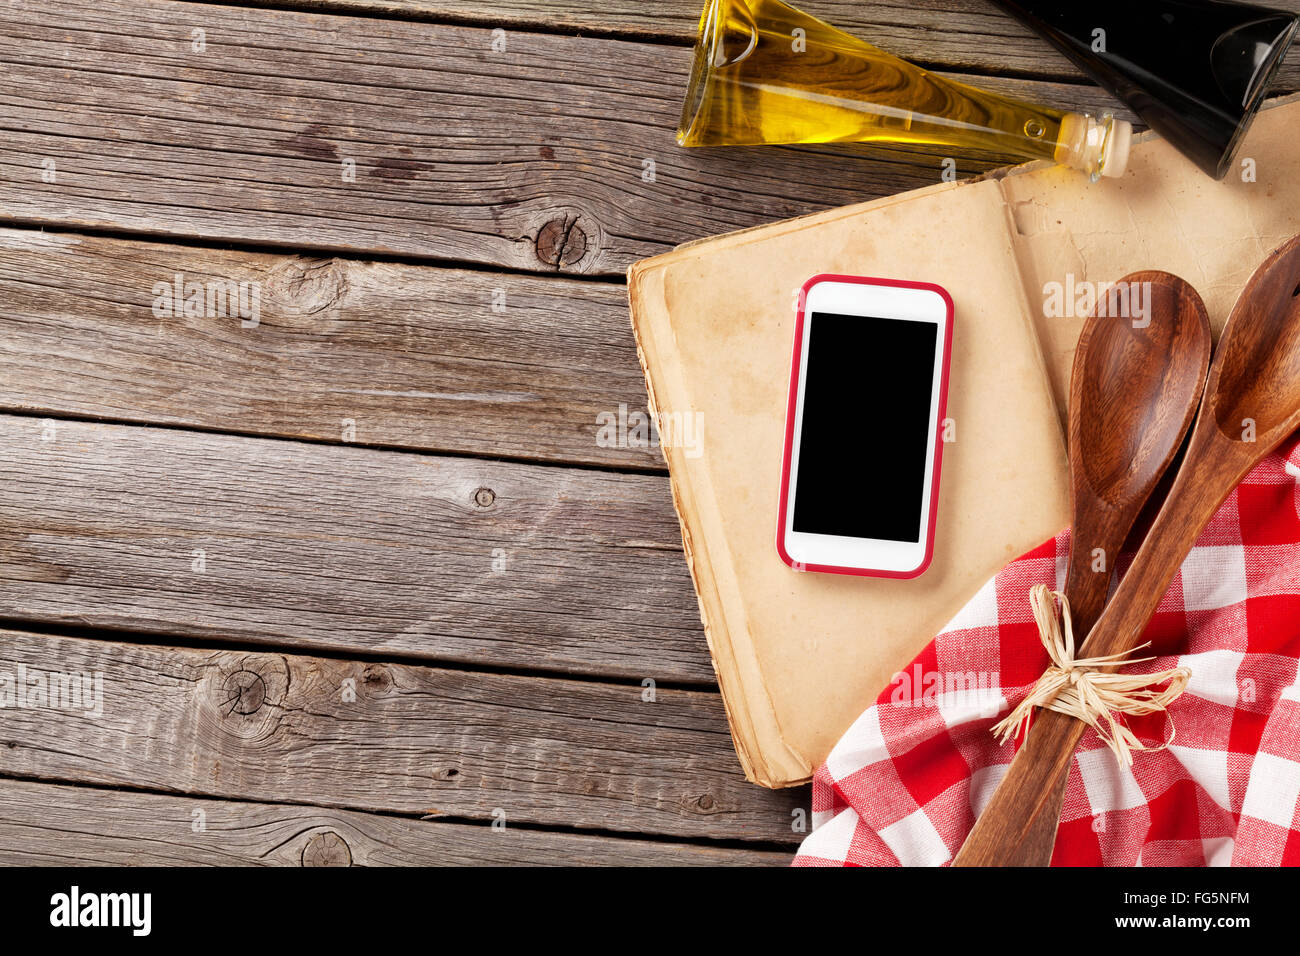 kitchen table with ingredients, utensils and smartphone with blank